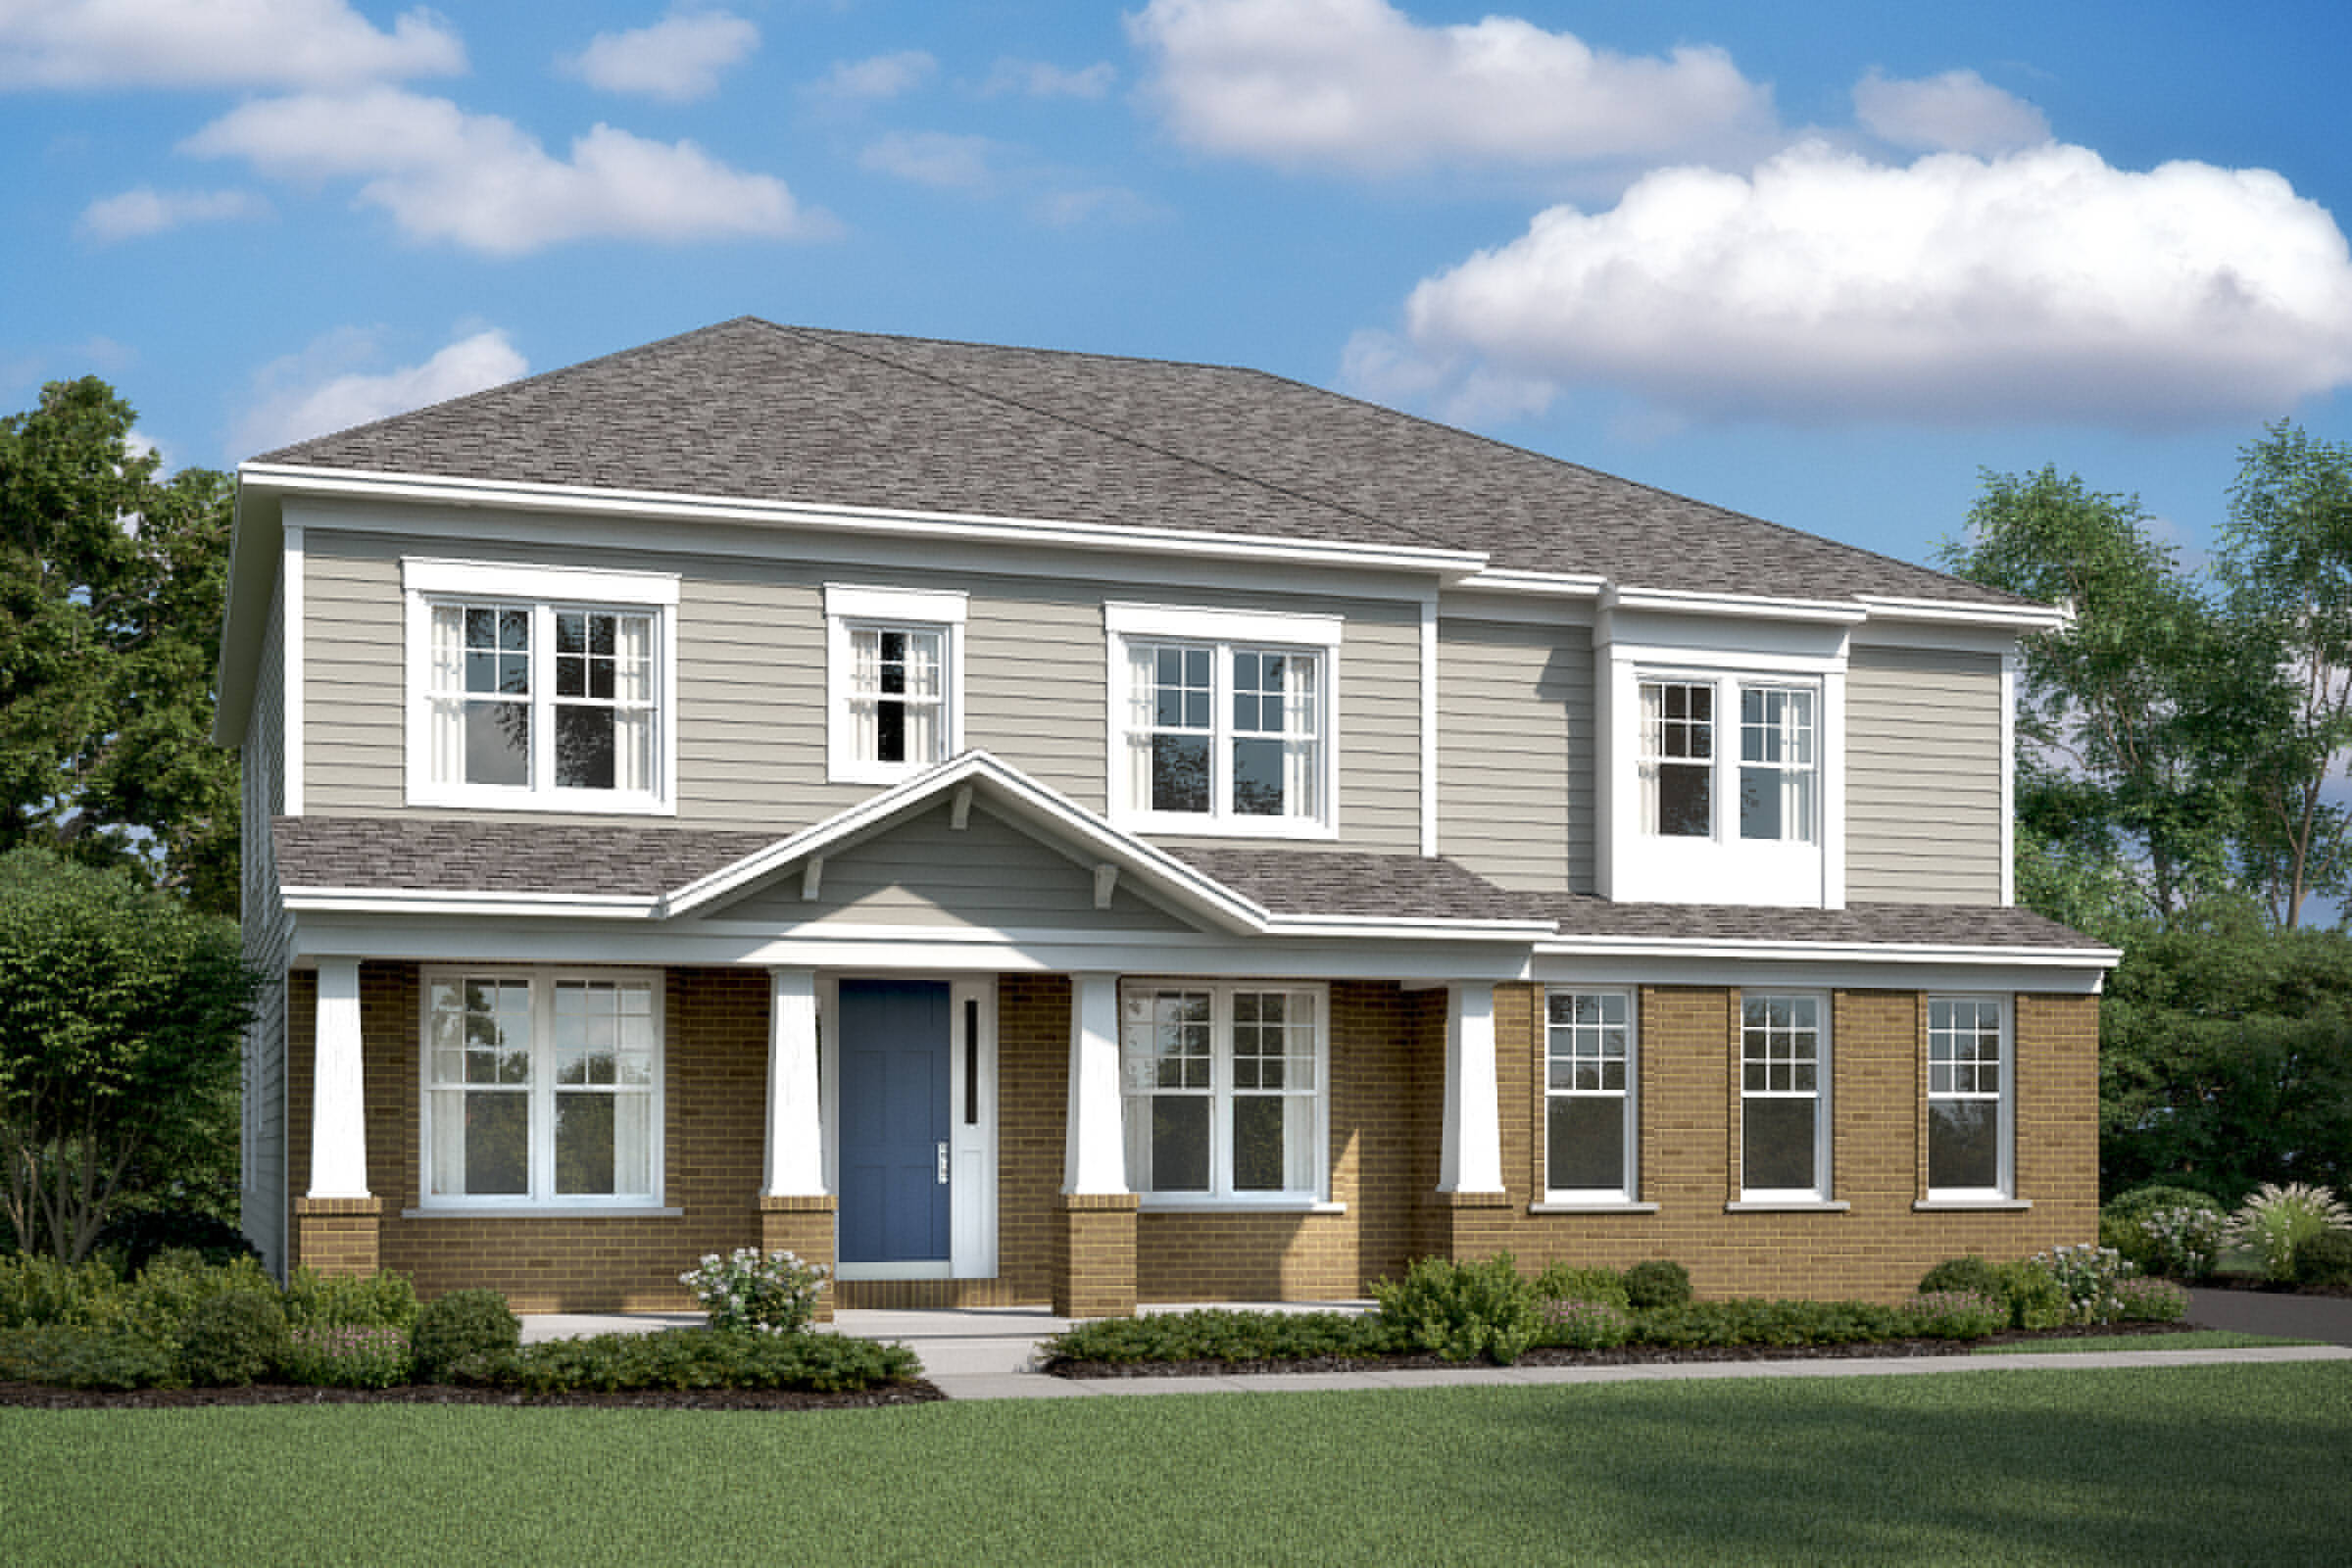 memphis II fs stone new homes at alexander lakes